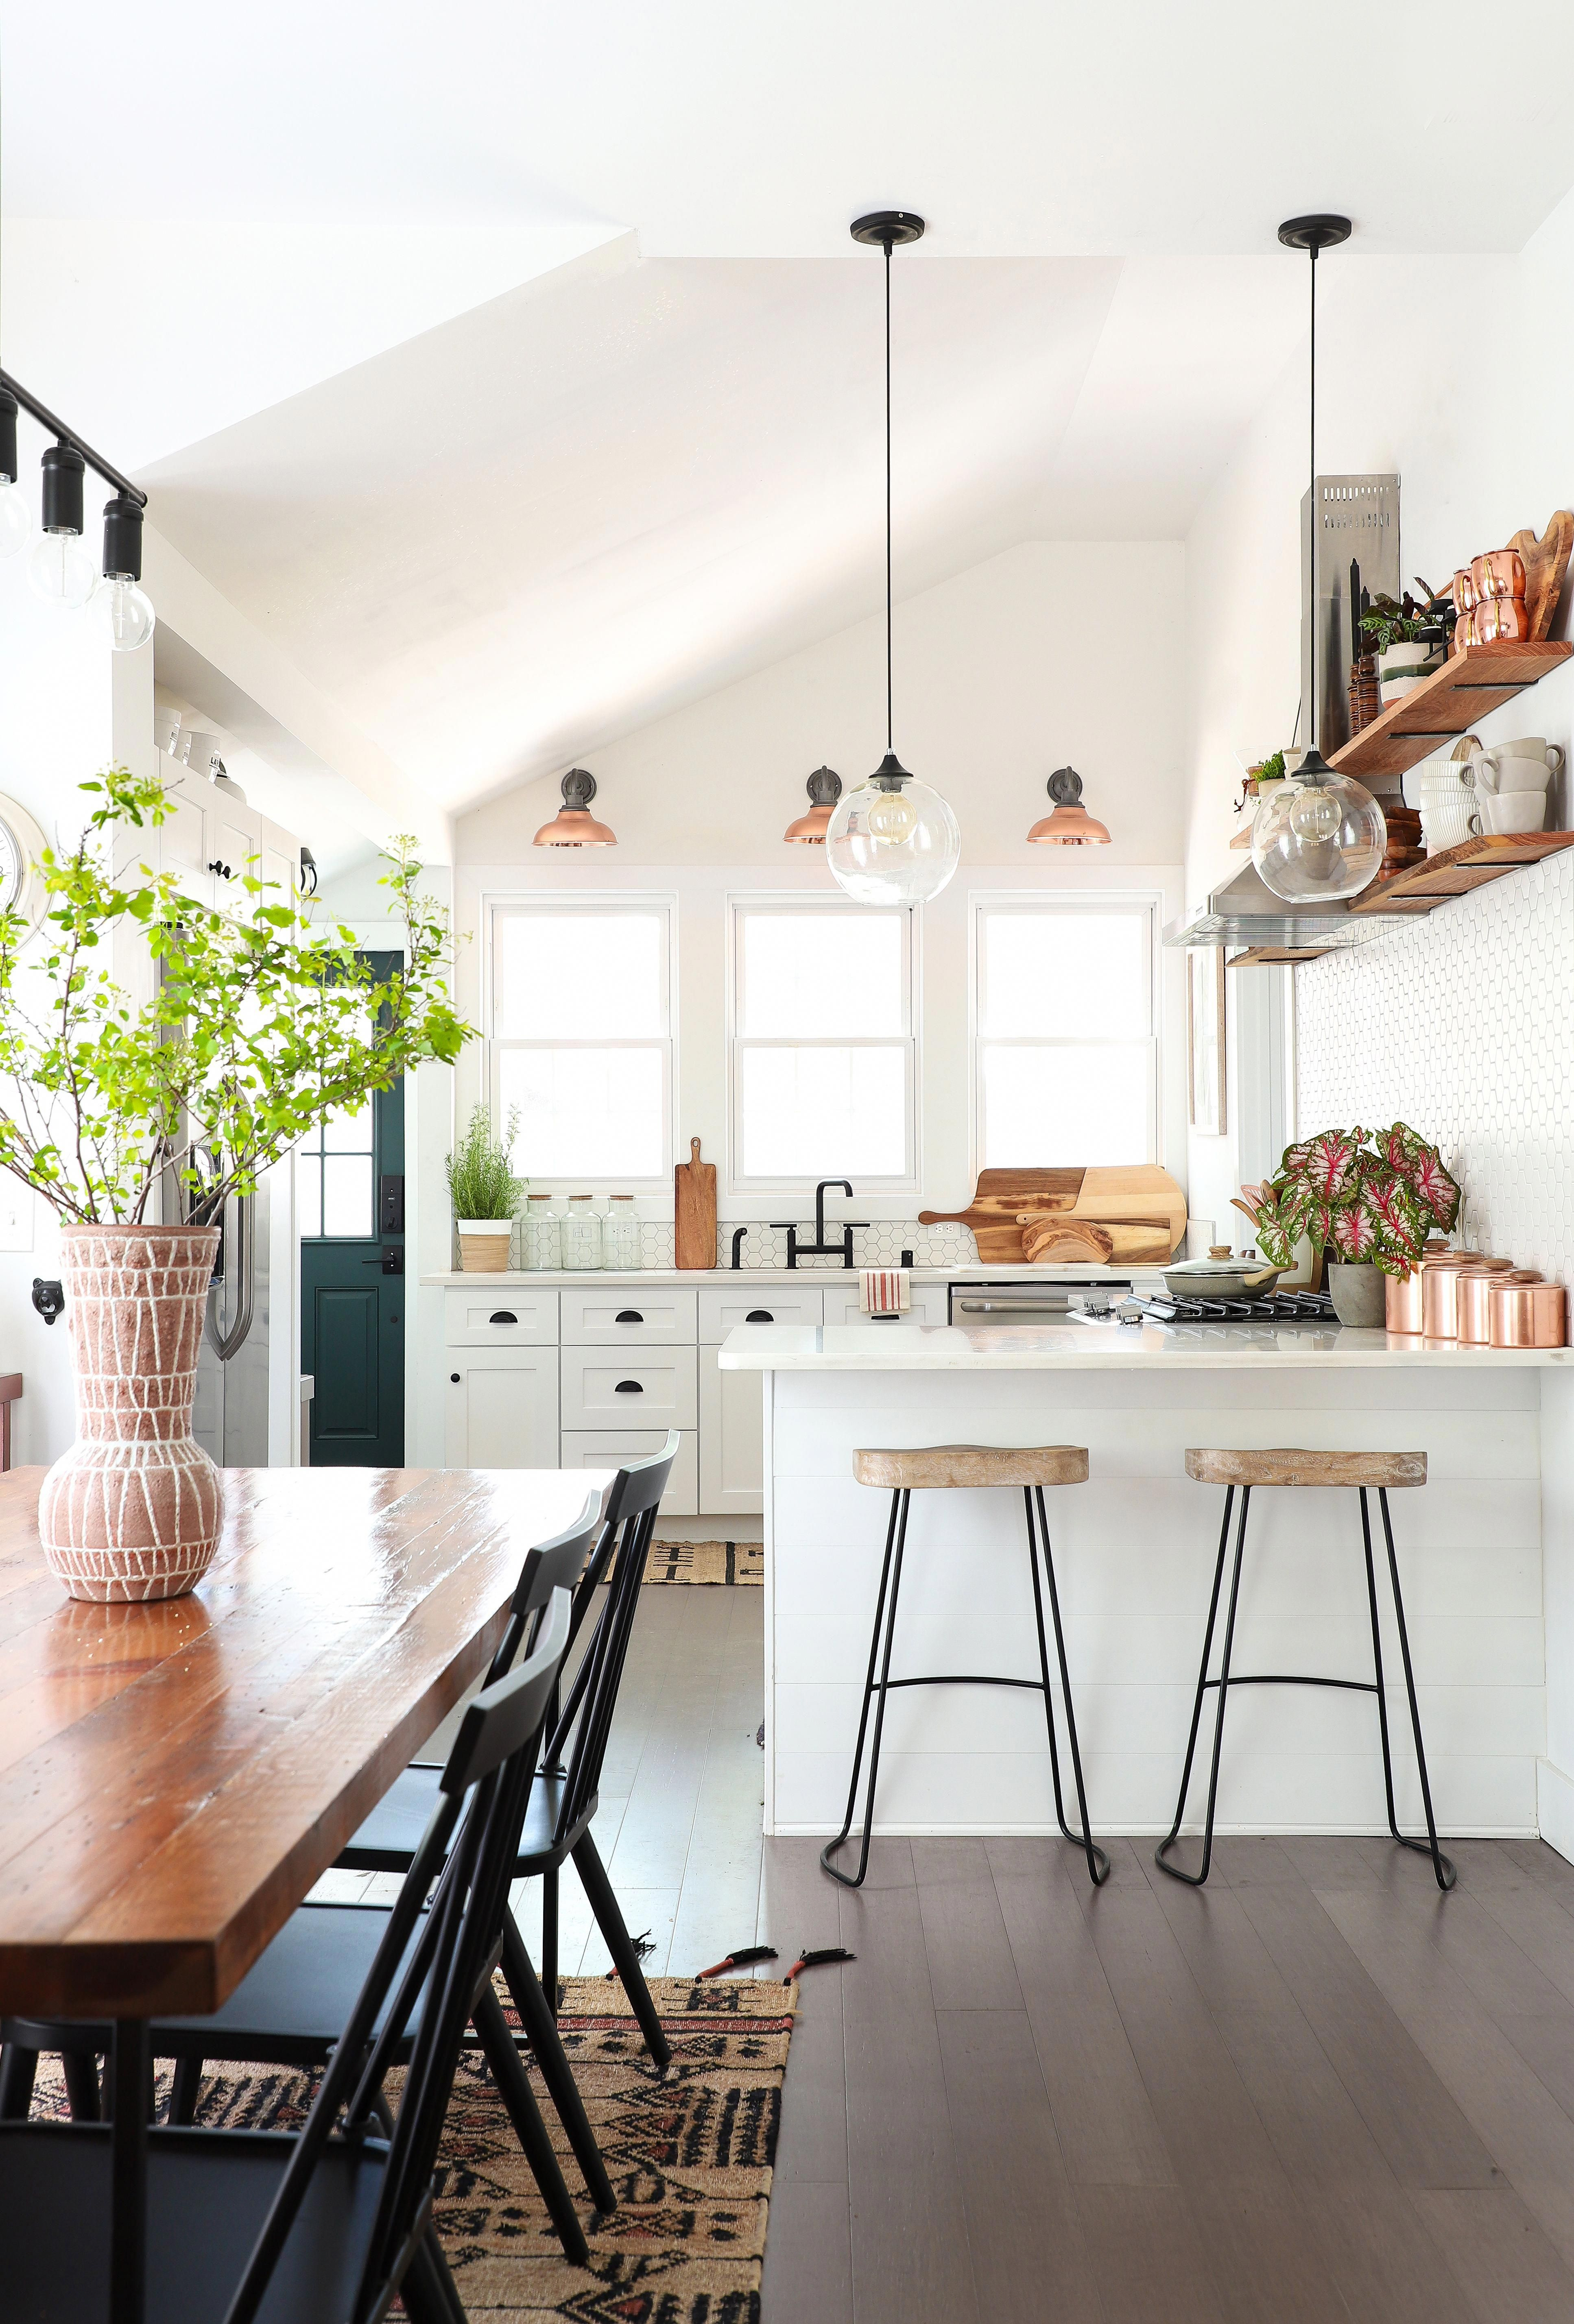 How This Diy Blogger Transformed Her Dilapidated Fixer